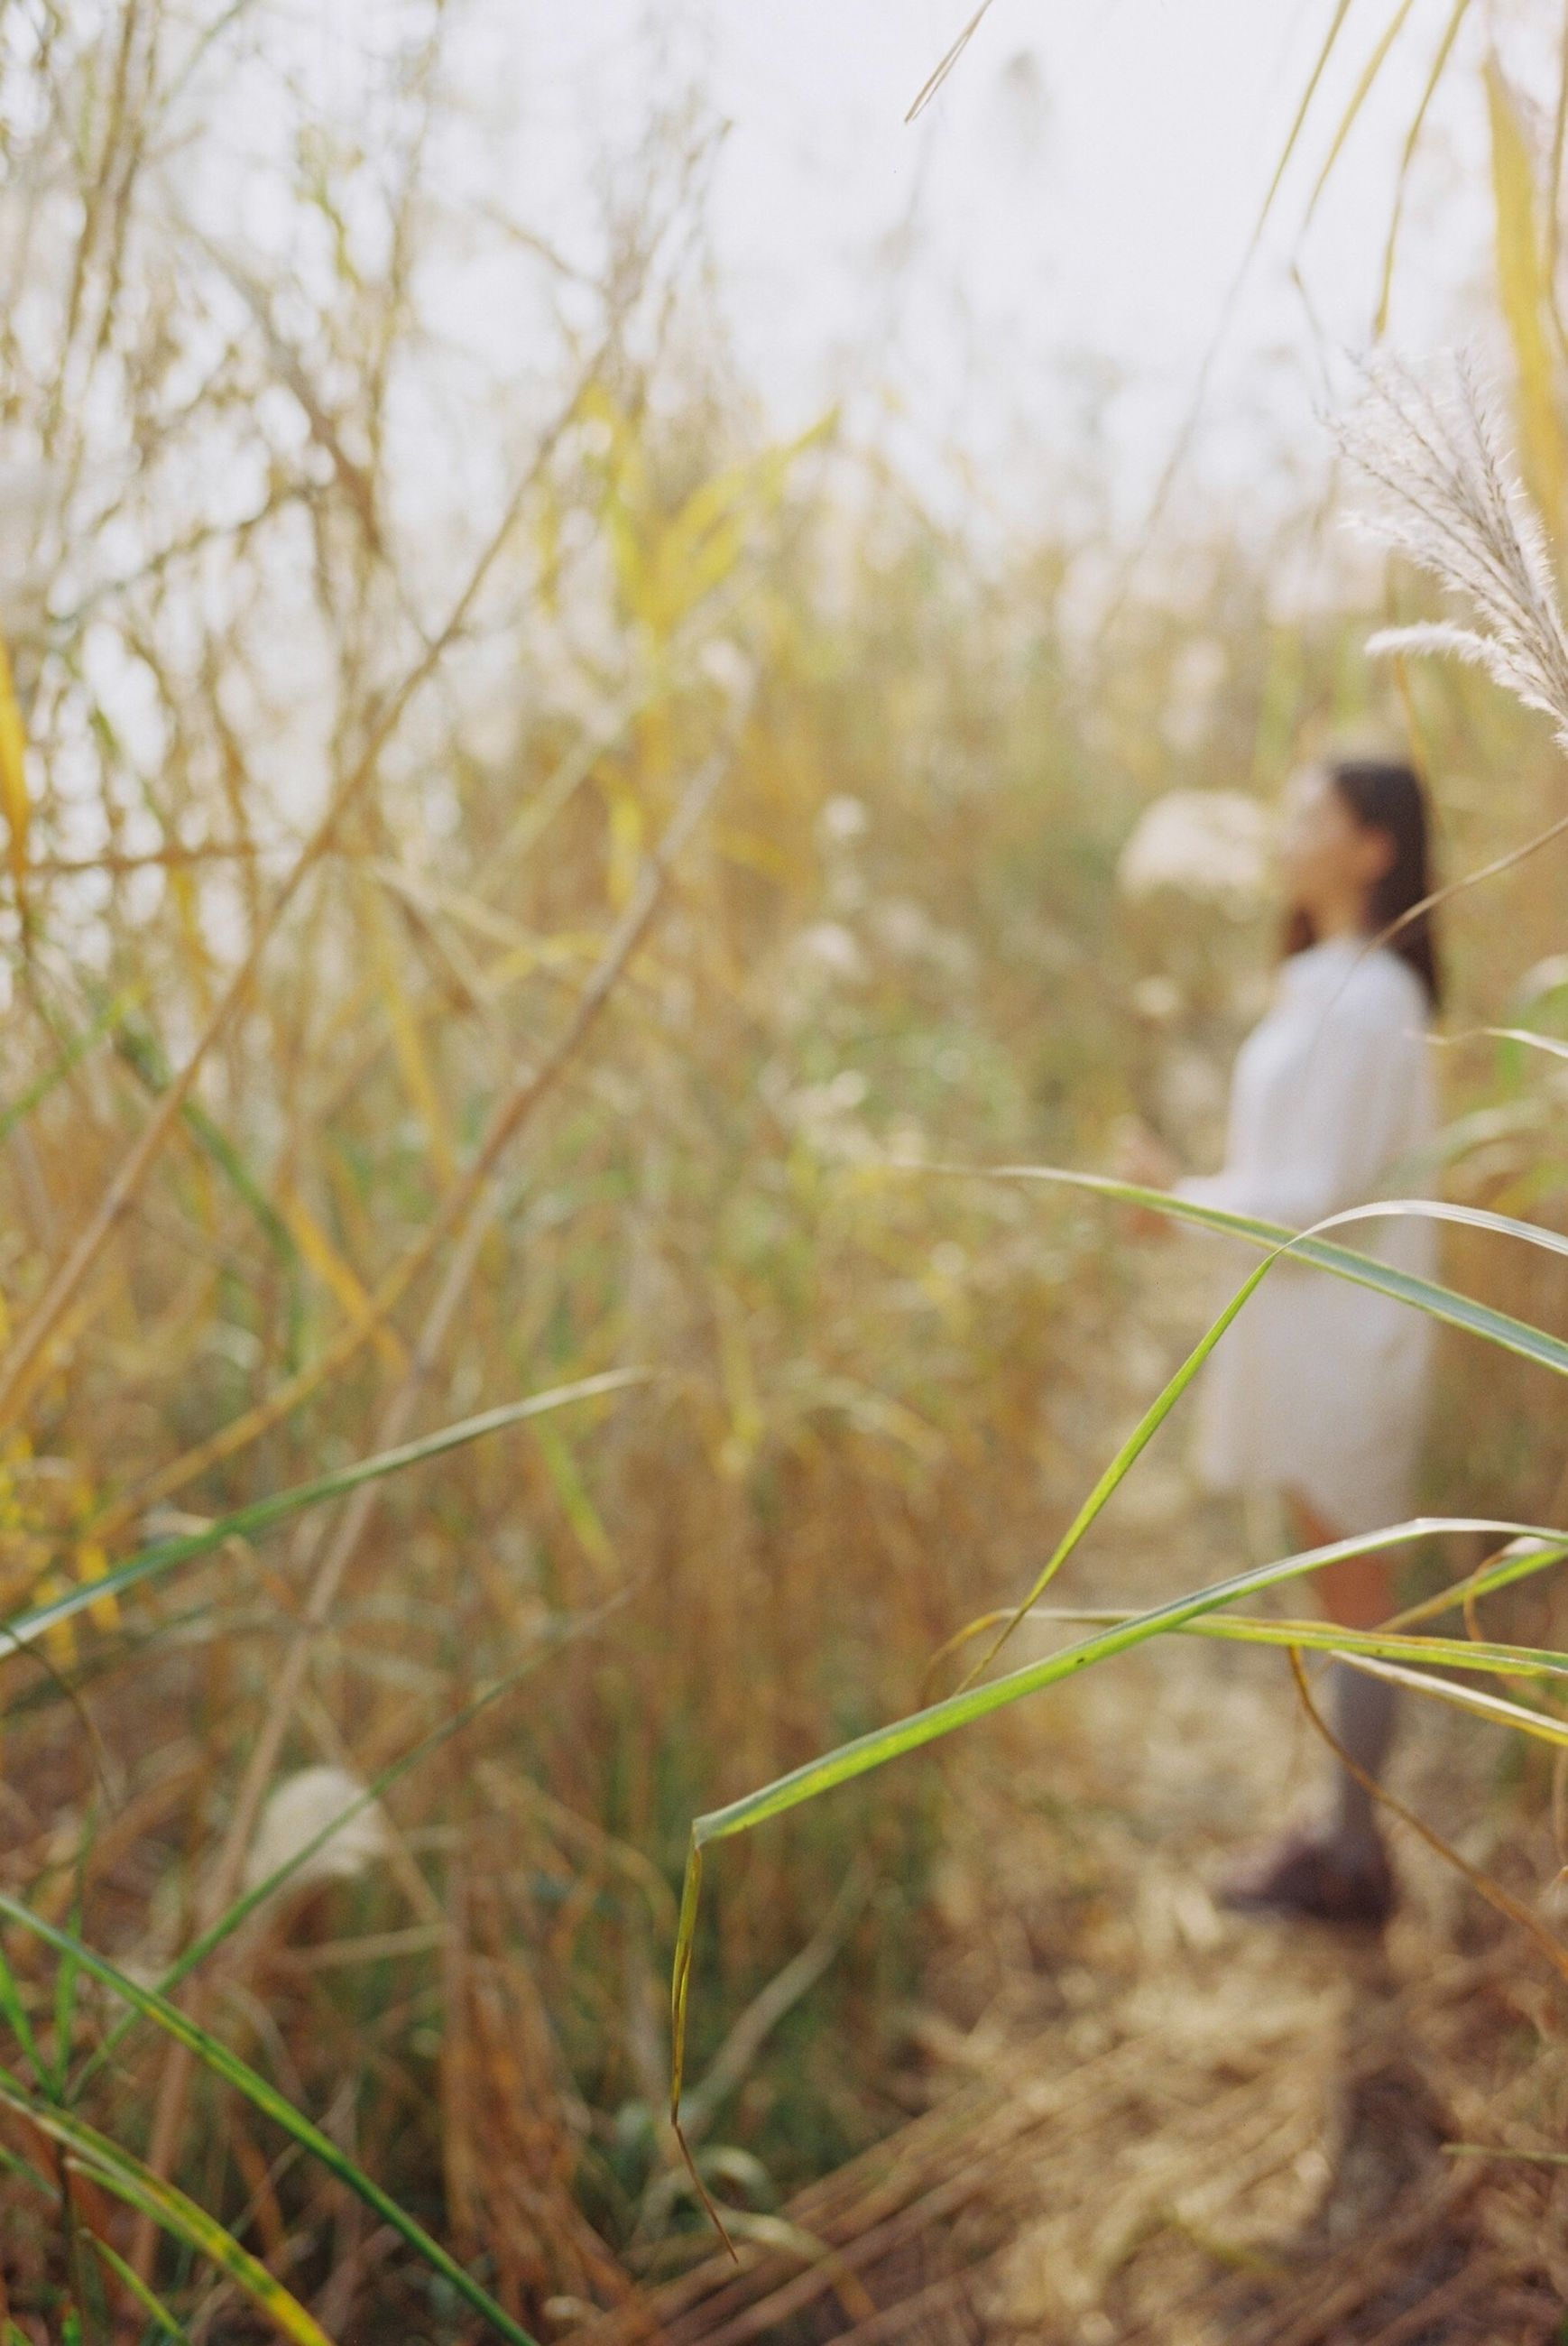 focus on foreground, animal themes, selective focus, one animal, plant, tree, nature, growth, wildlife, day, outdoors, forest, grass, animals in the wild, rear view, close-up, field, tranquility